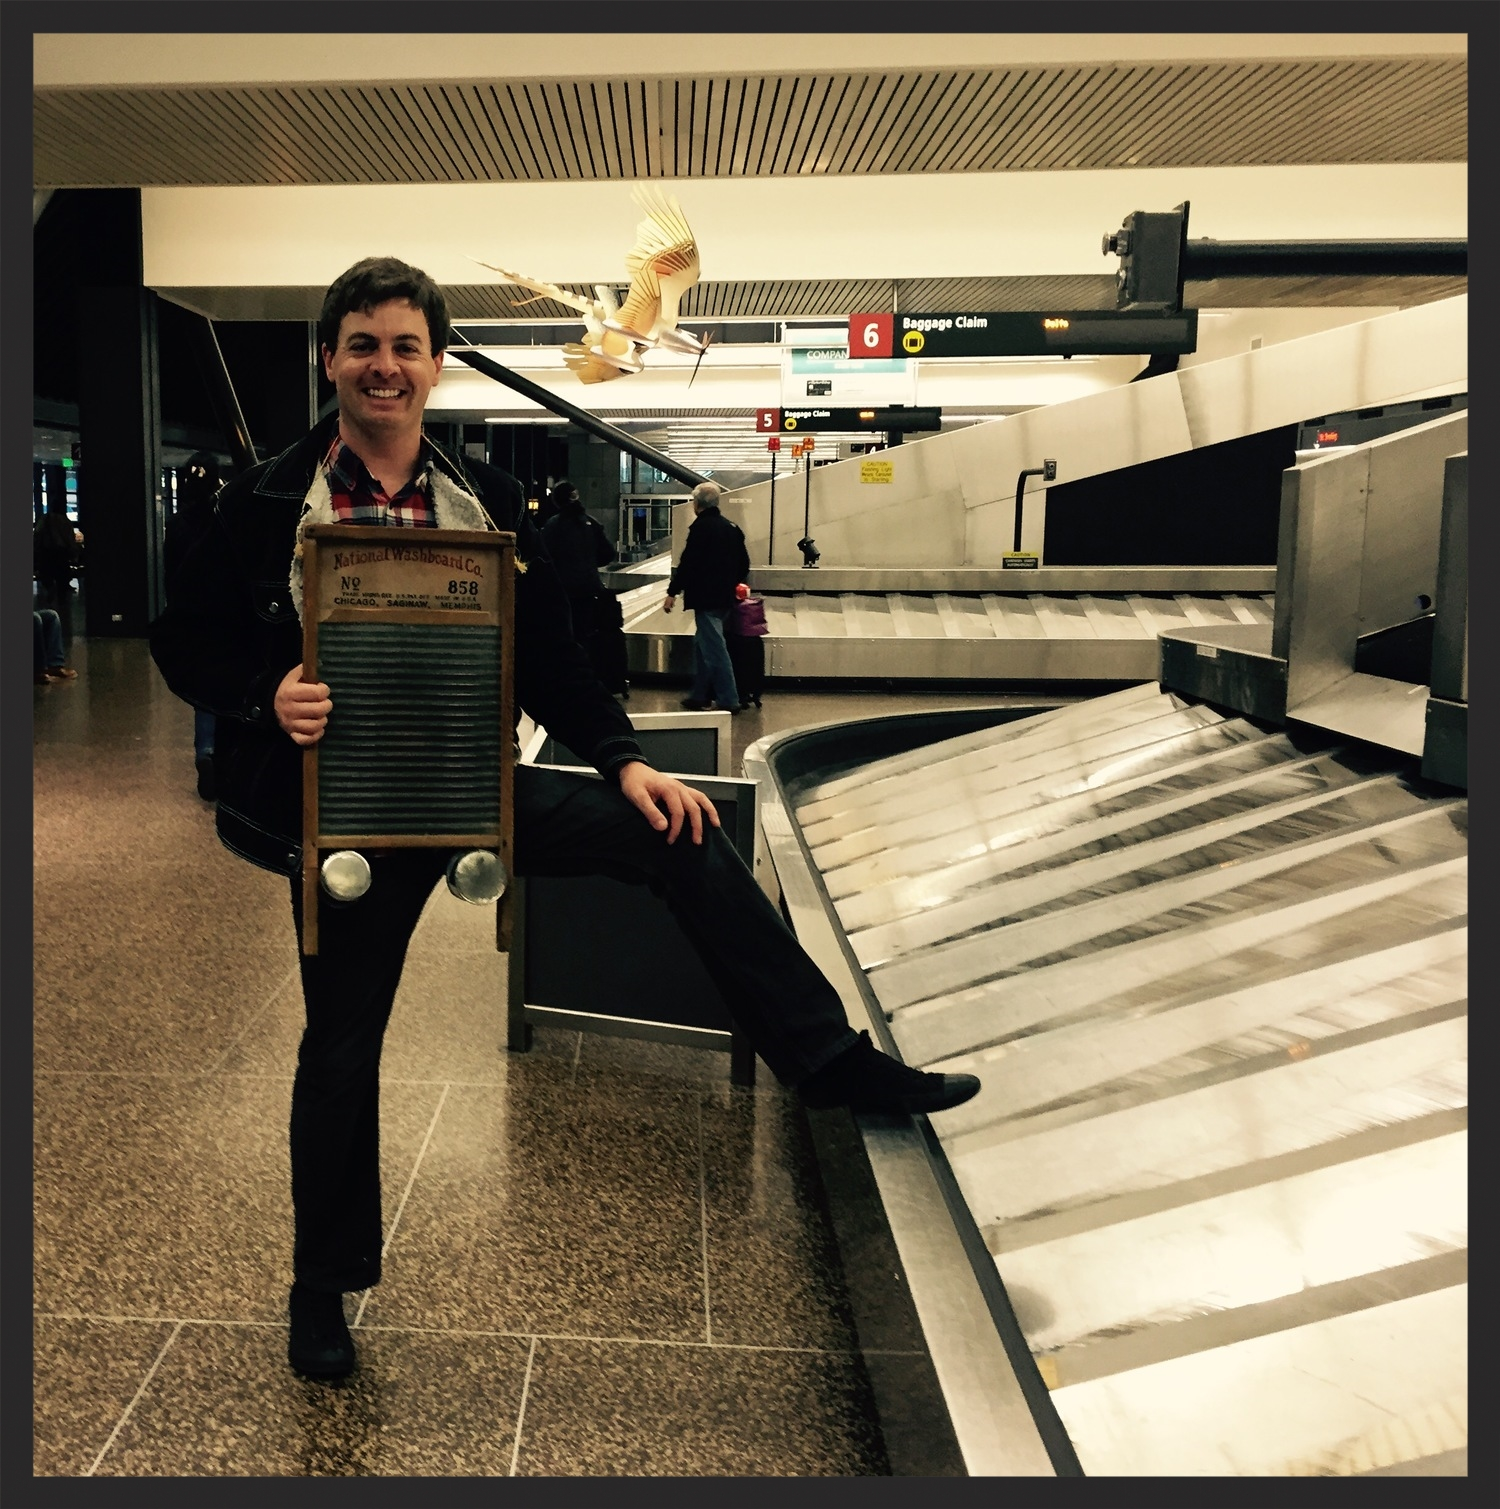 Safely arrived at the airport in Seattle, armed and ready with my washboard.